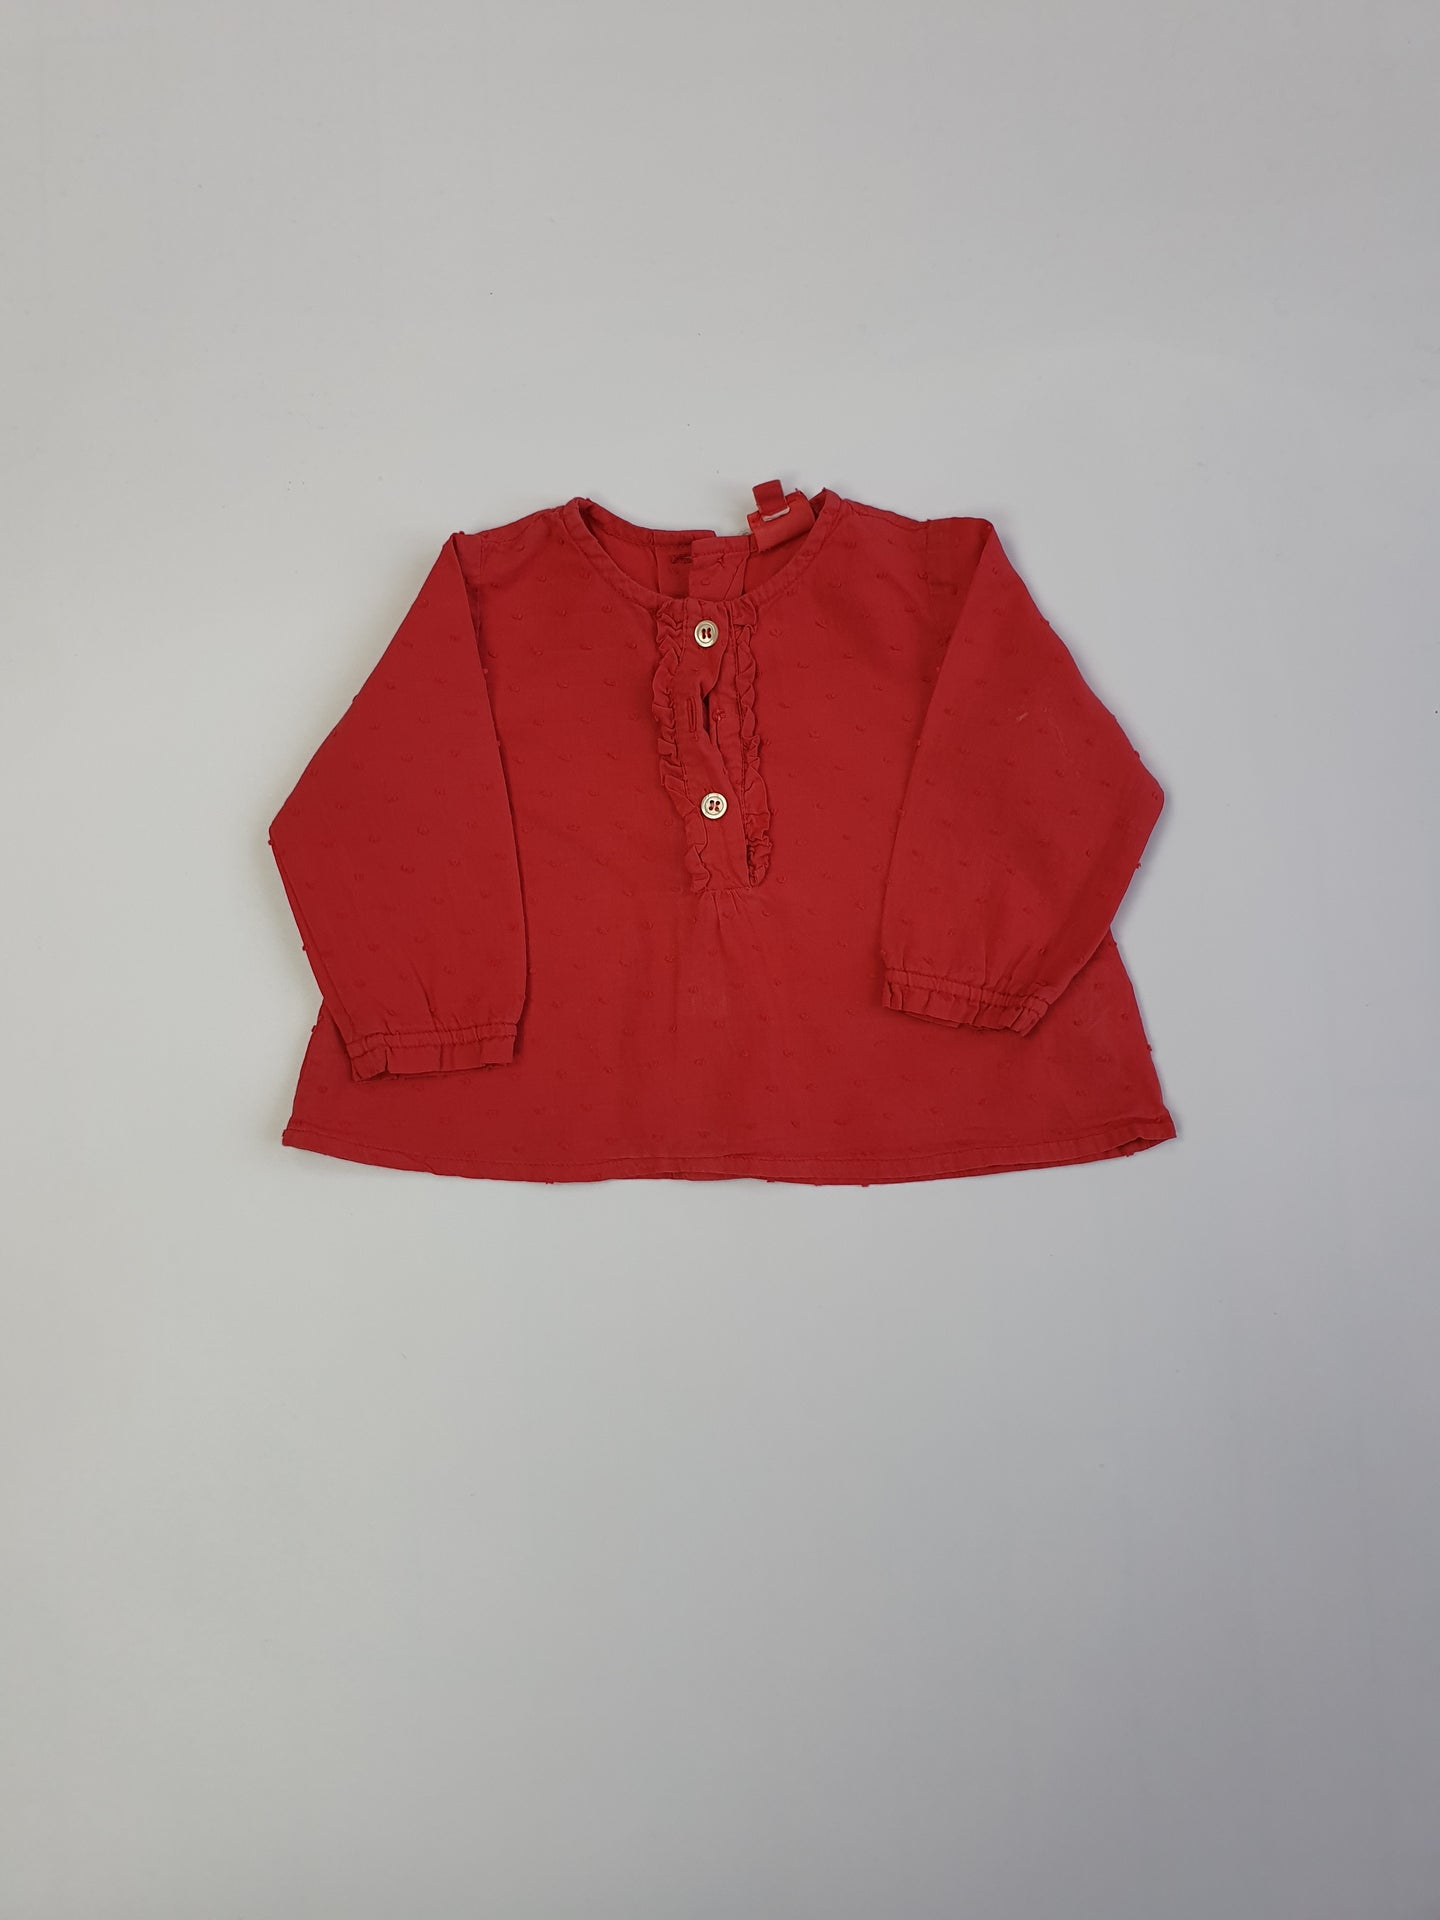 BONTON blouse girl 6m